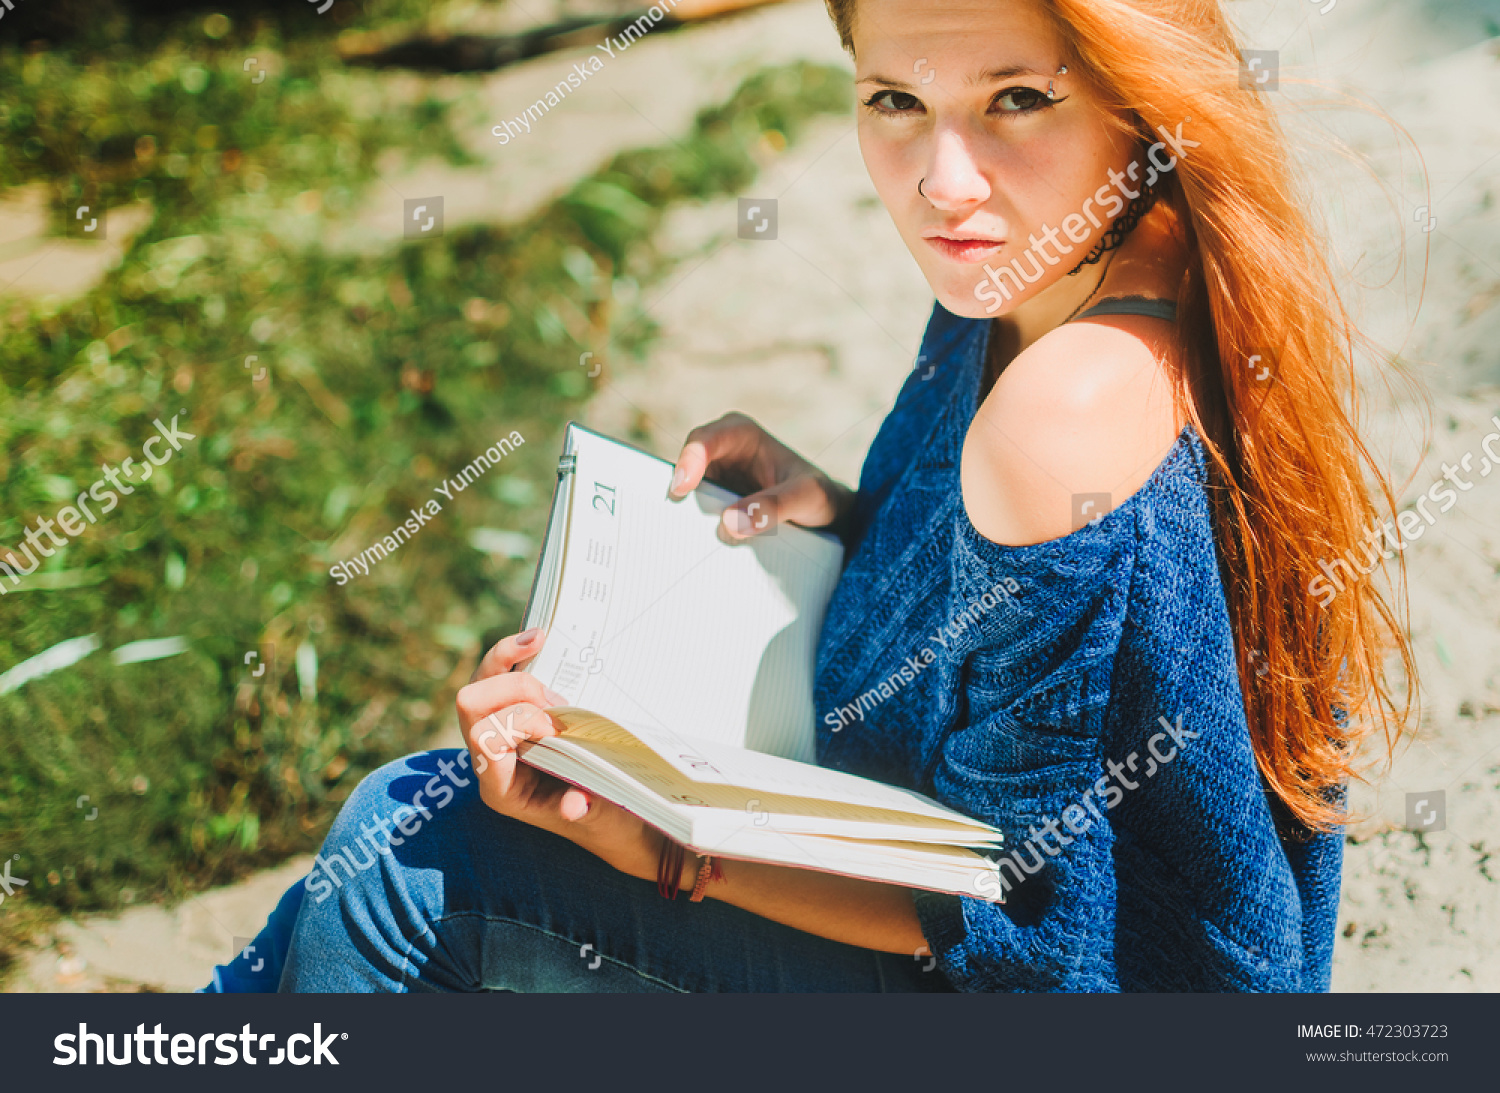 Teen Girl On Seashore Reading Book Stock Photo 472303723 ...